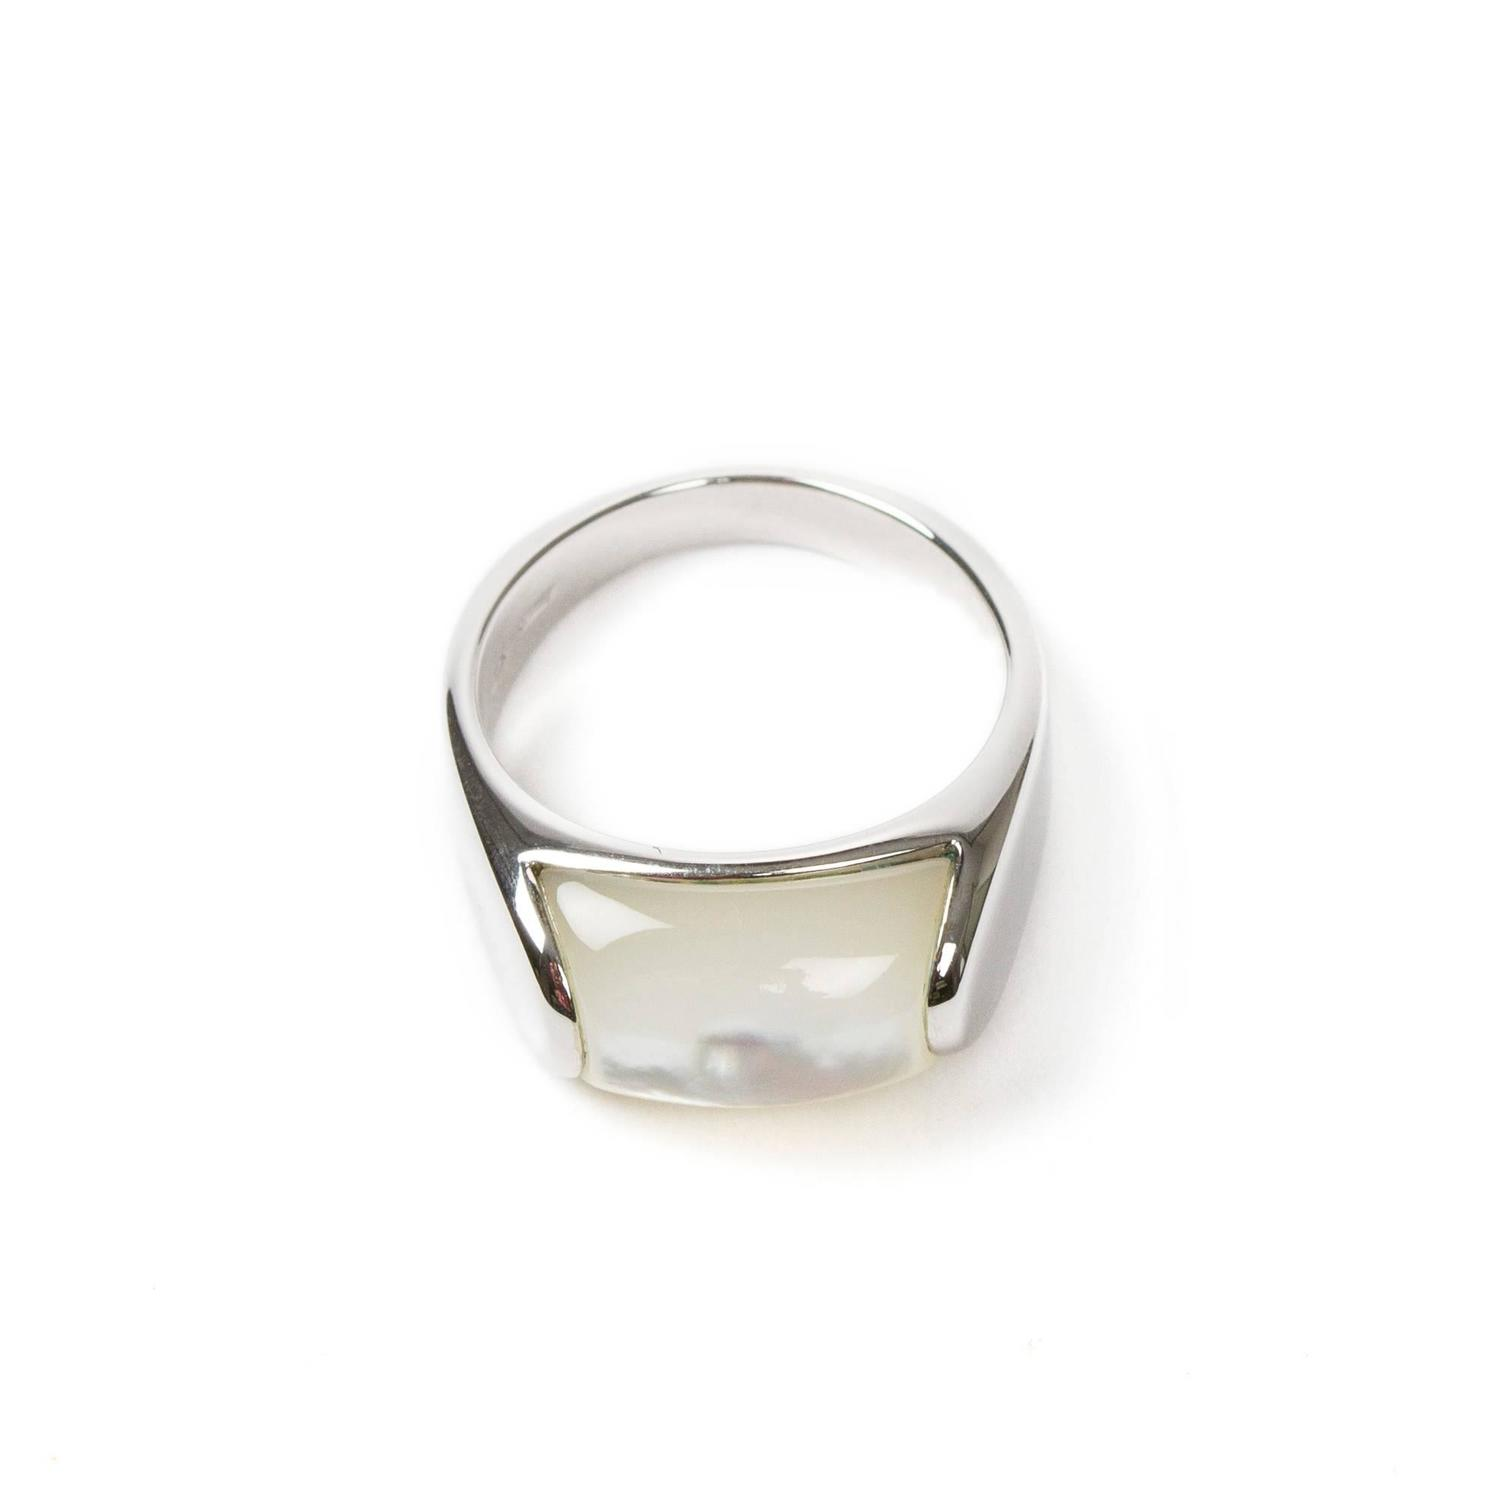 tronchetto ring white gold of pearl at 1stdibs